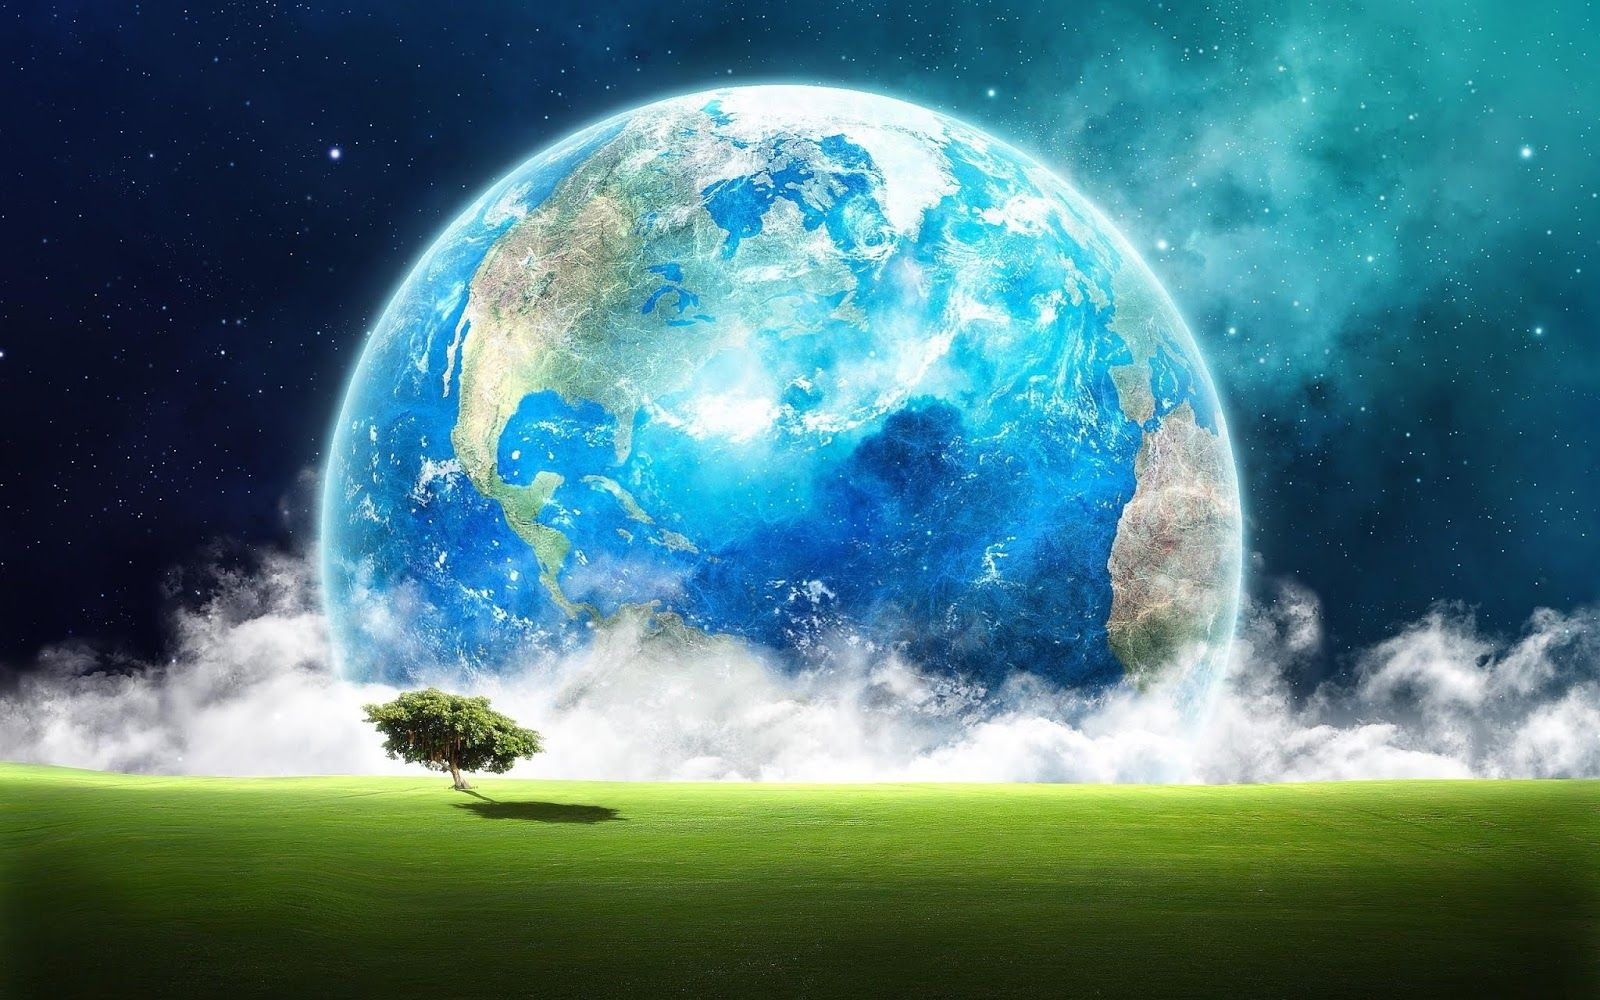 1080p Hd Earth Wallpaper High Quality Desktop Iphone And